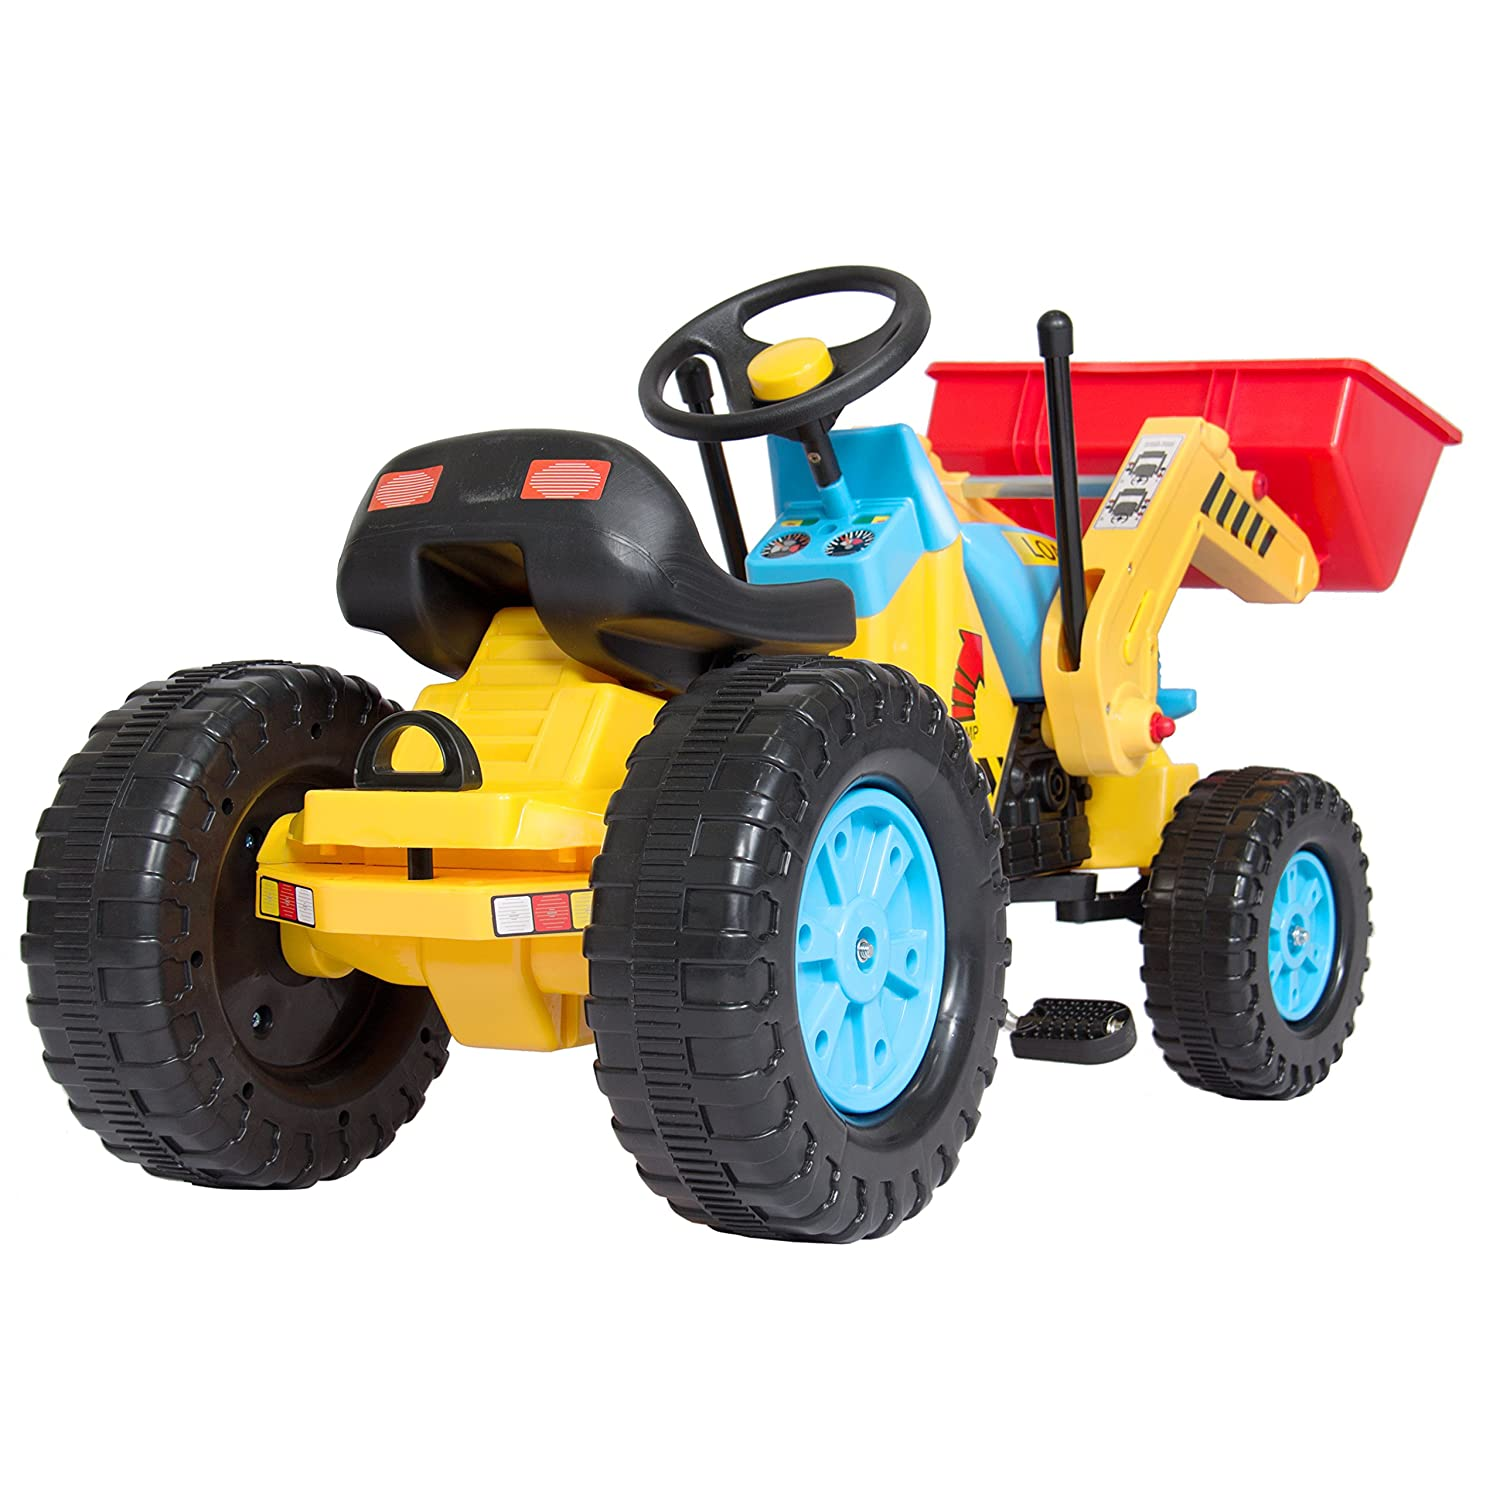 amazon com best choice products kids pedal ride on excavator